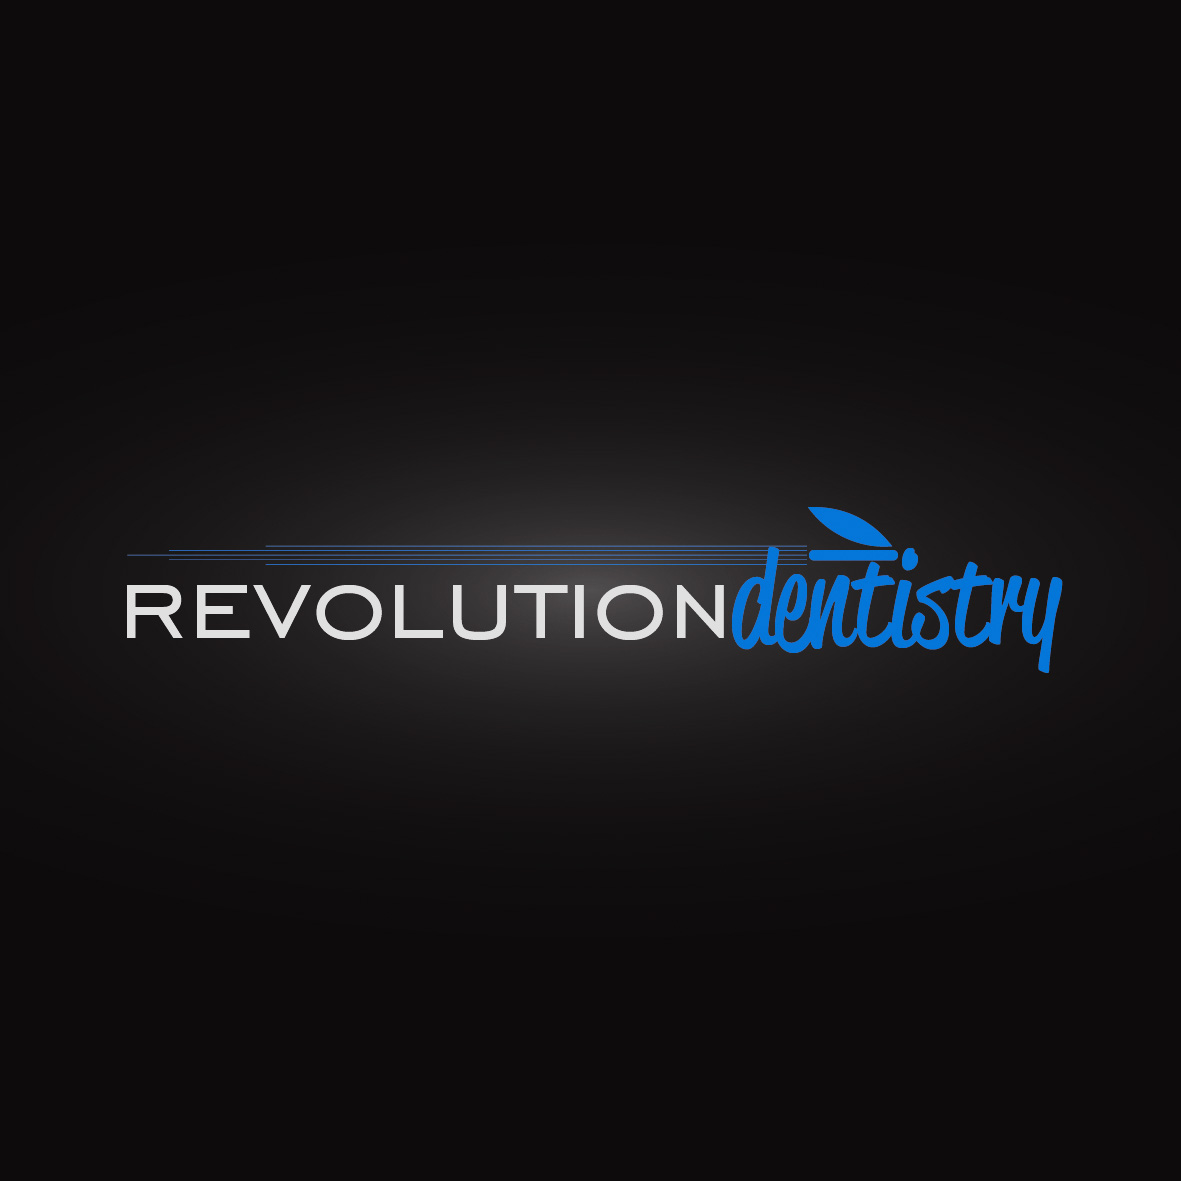 Logo Design by nTia - Entry No. 218 in the Logo Design Contest Artistic Logo Design for Revolution Dentistry.